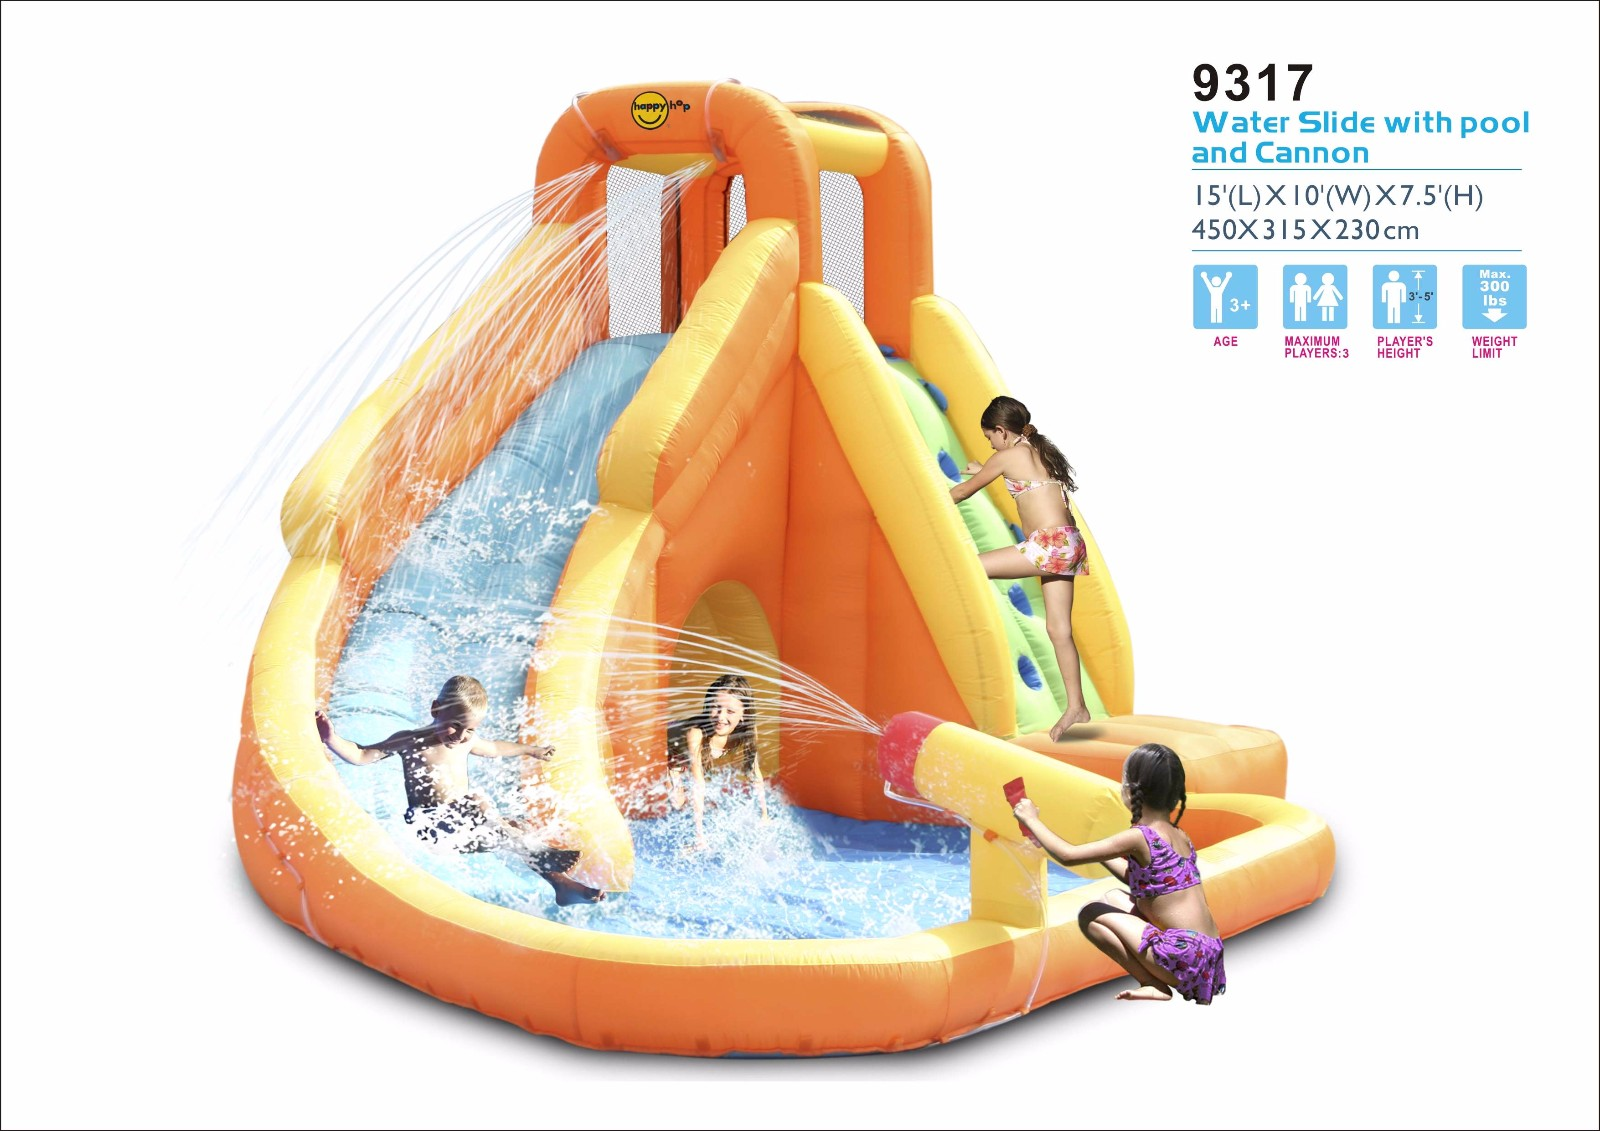 Inflatable Pool-9317 Water Slide with Pool and Cannon